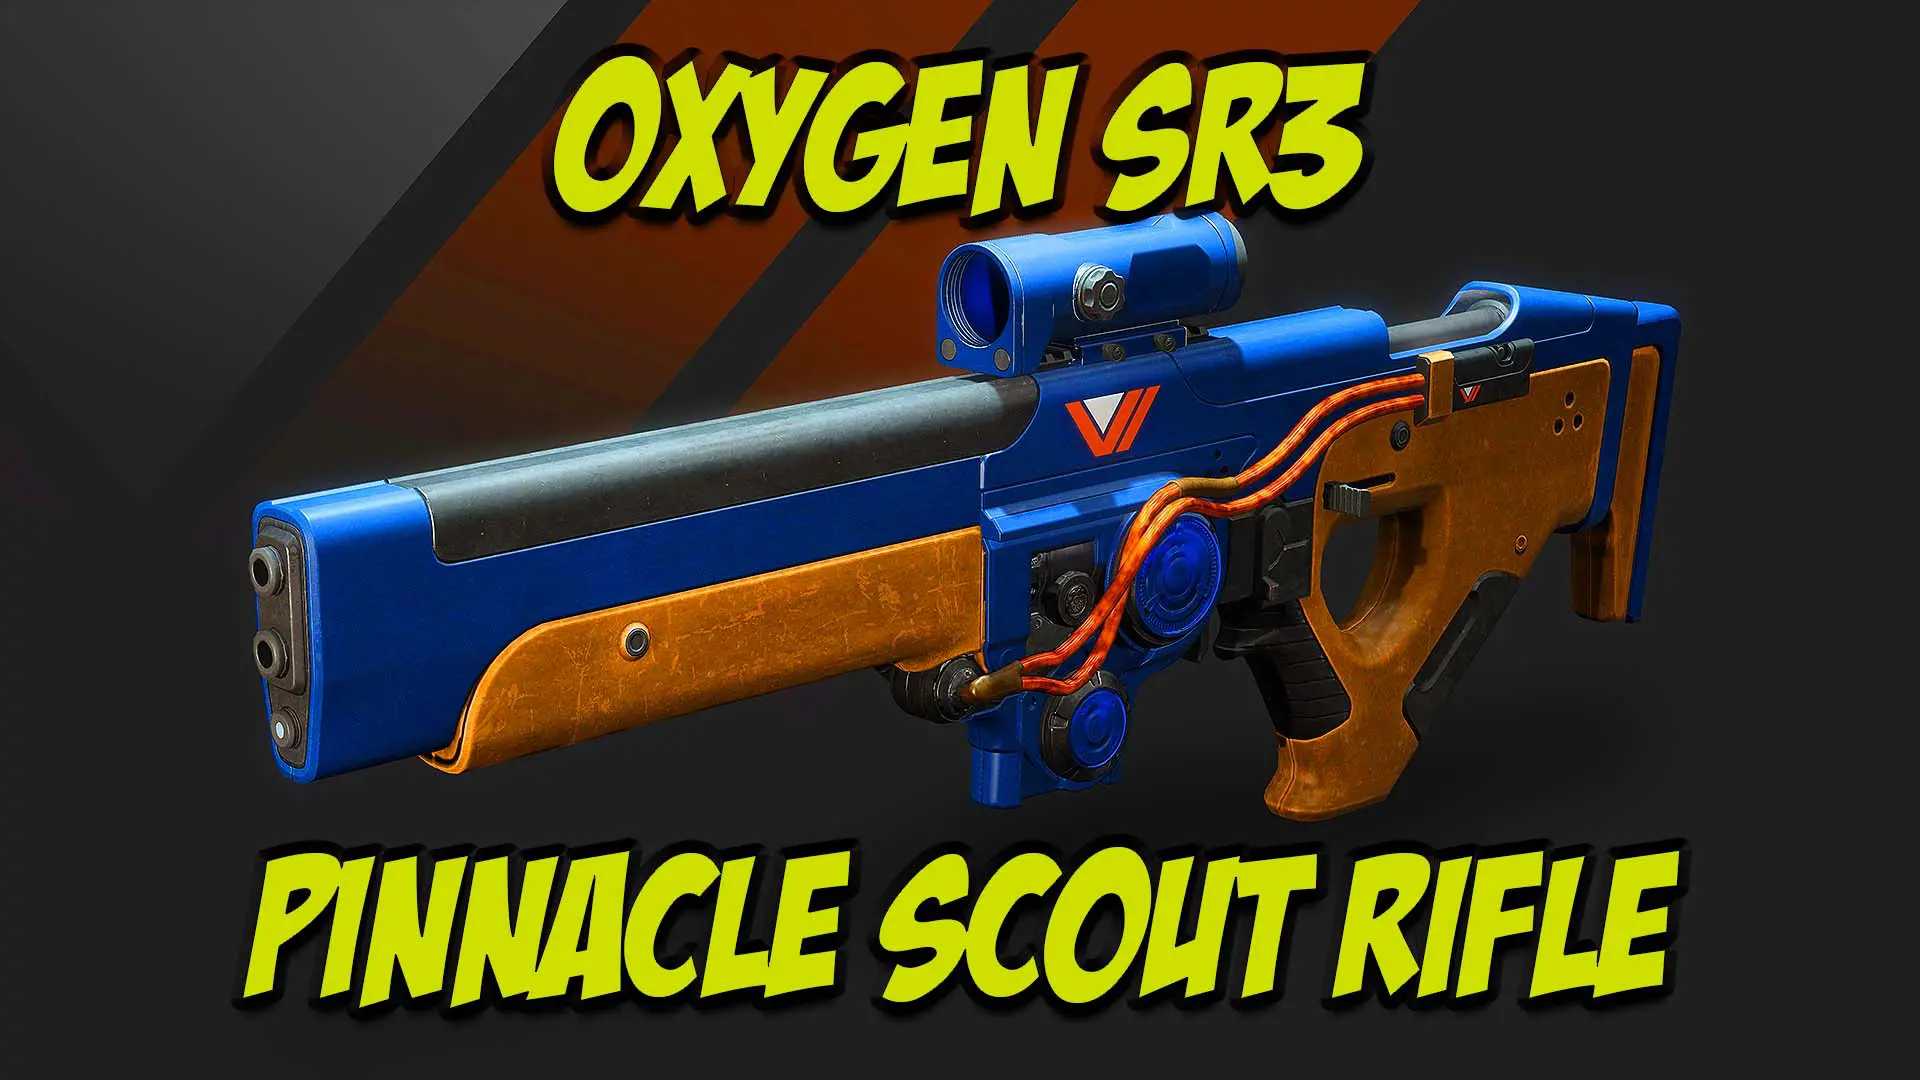 Oxygen SR3 Pinnacle Scout Rifle